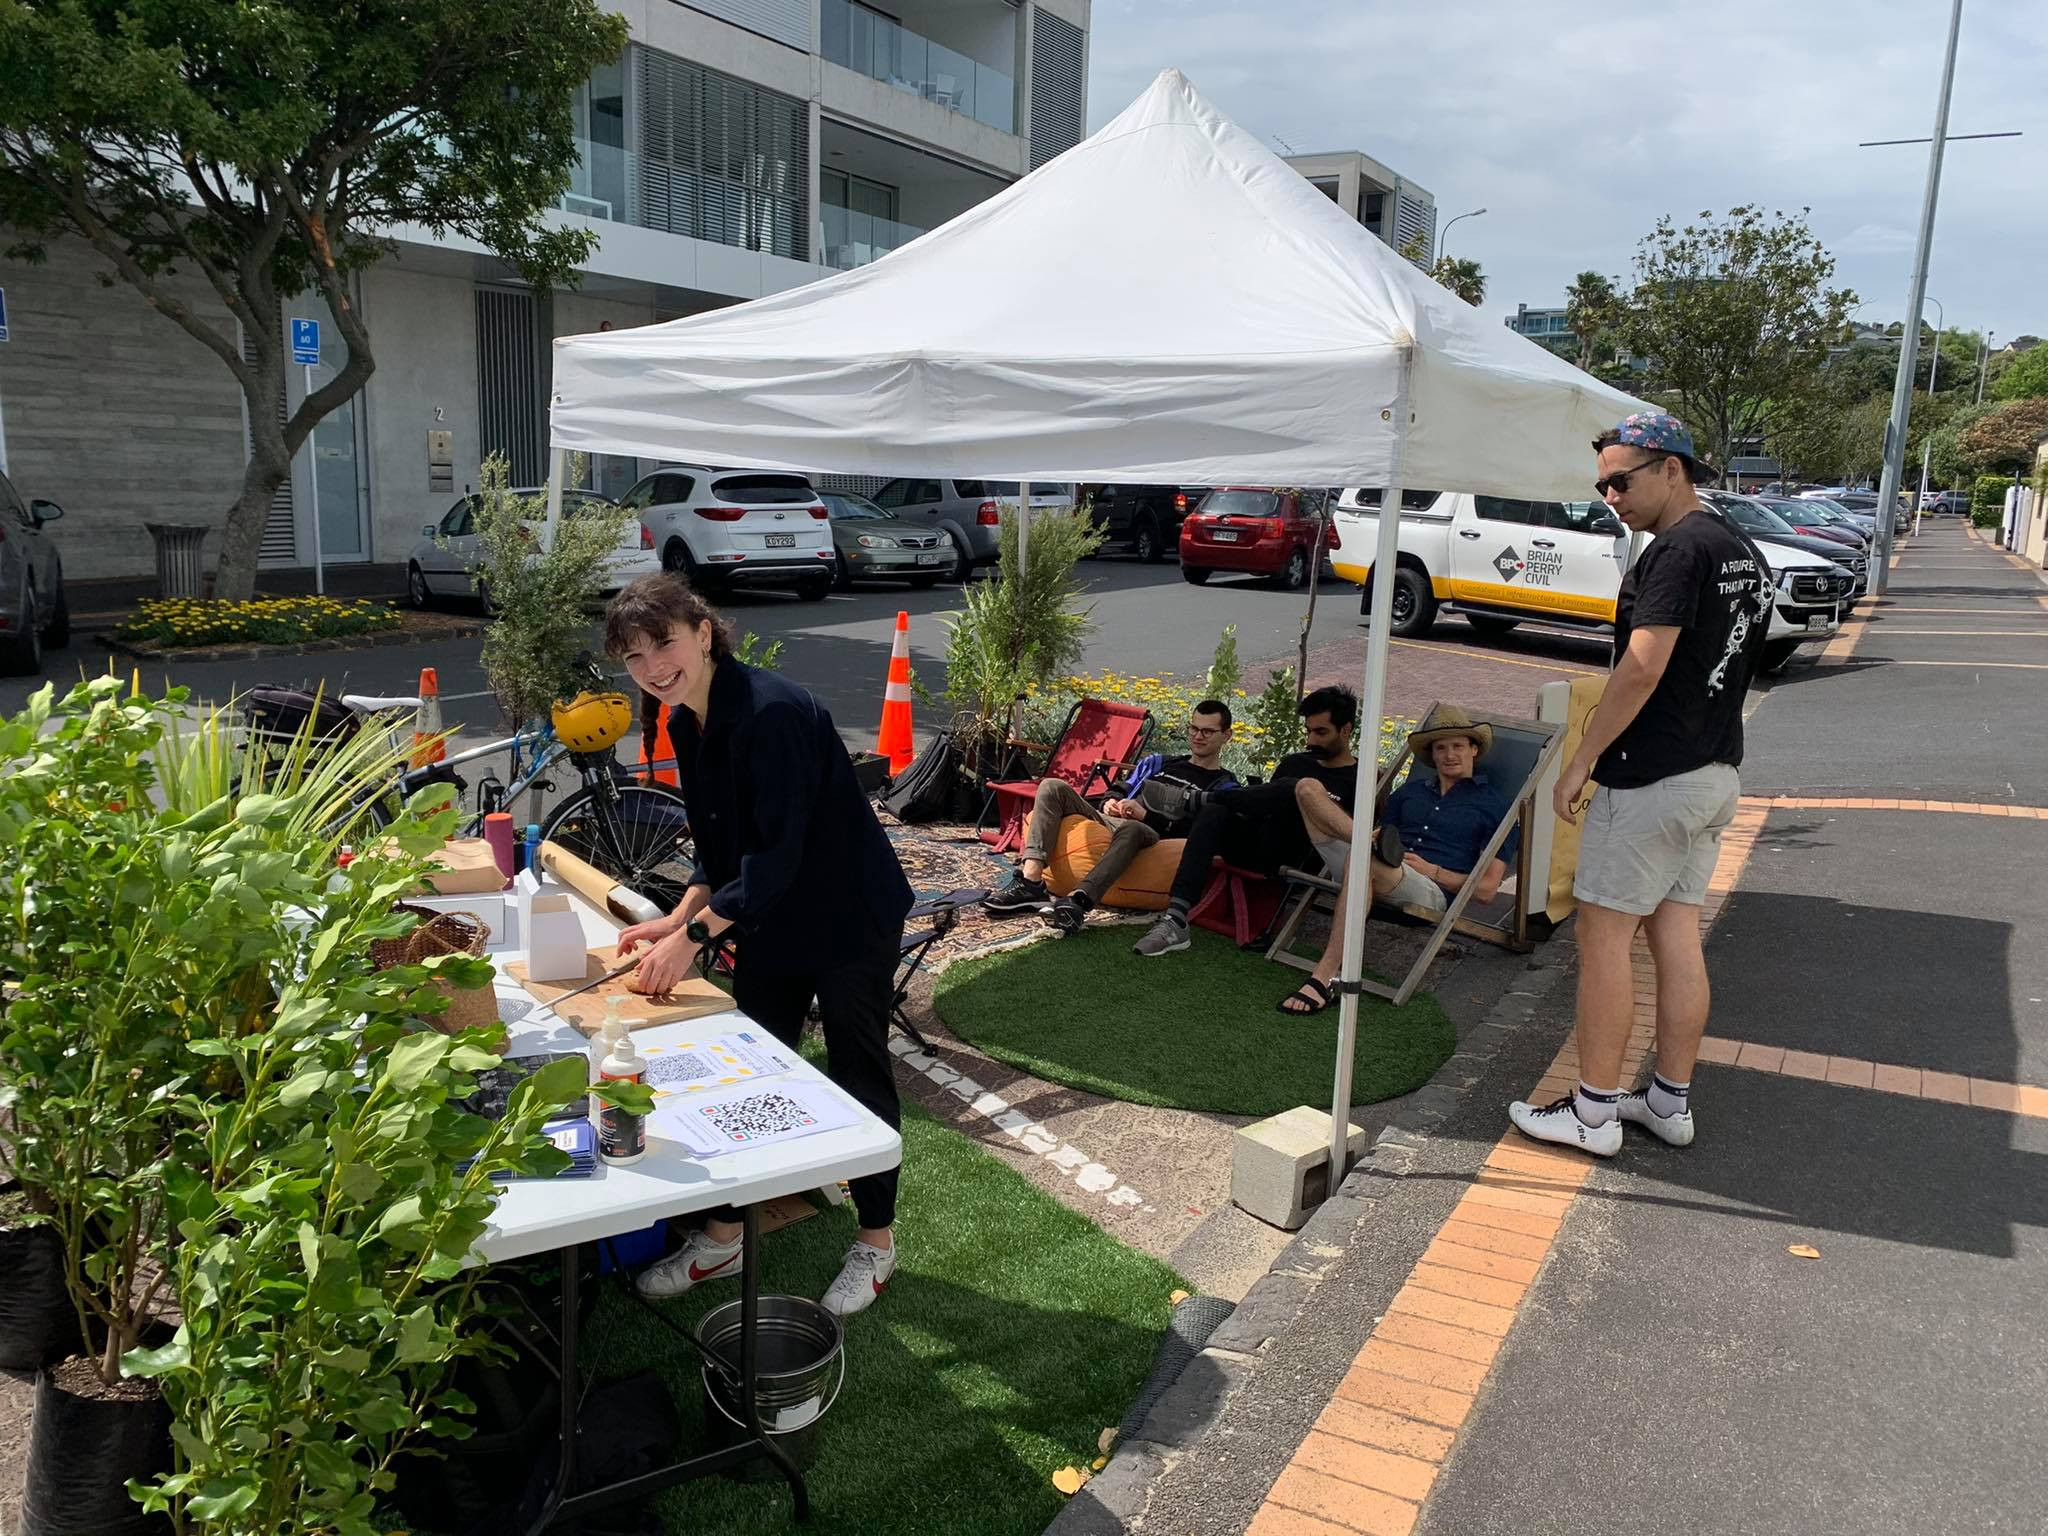 A few carparks on the side of a road are covered in turf, plants, tables, seating area and a marquee with people interacting in the space.